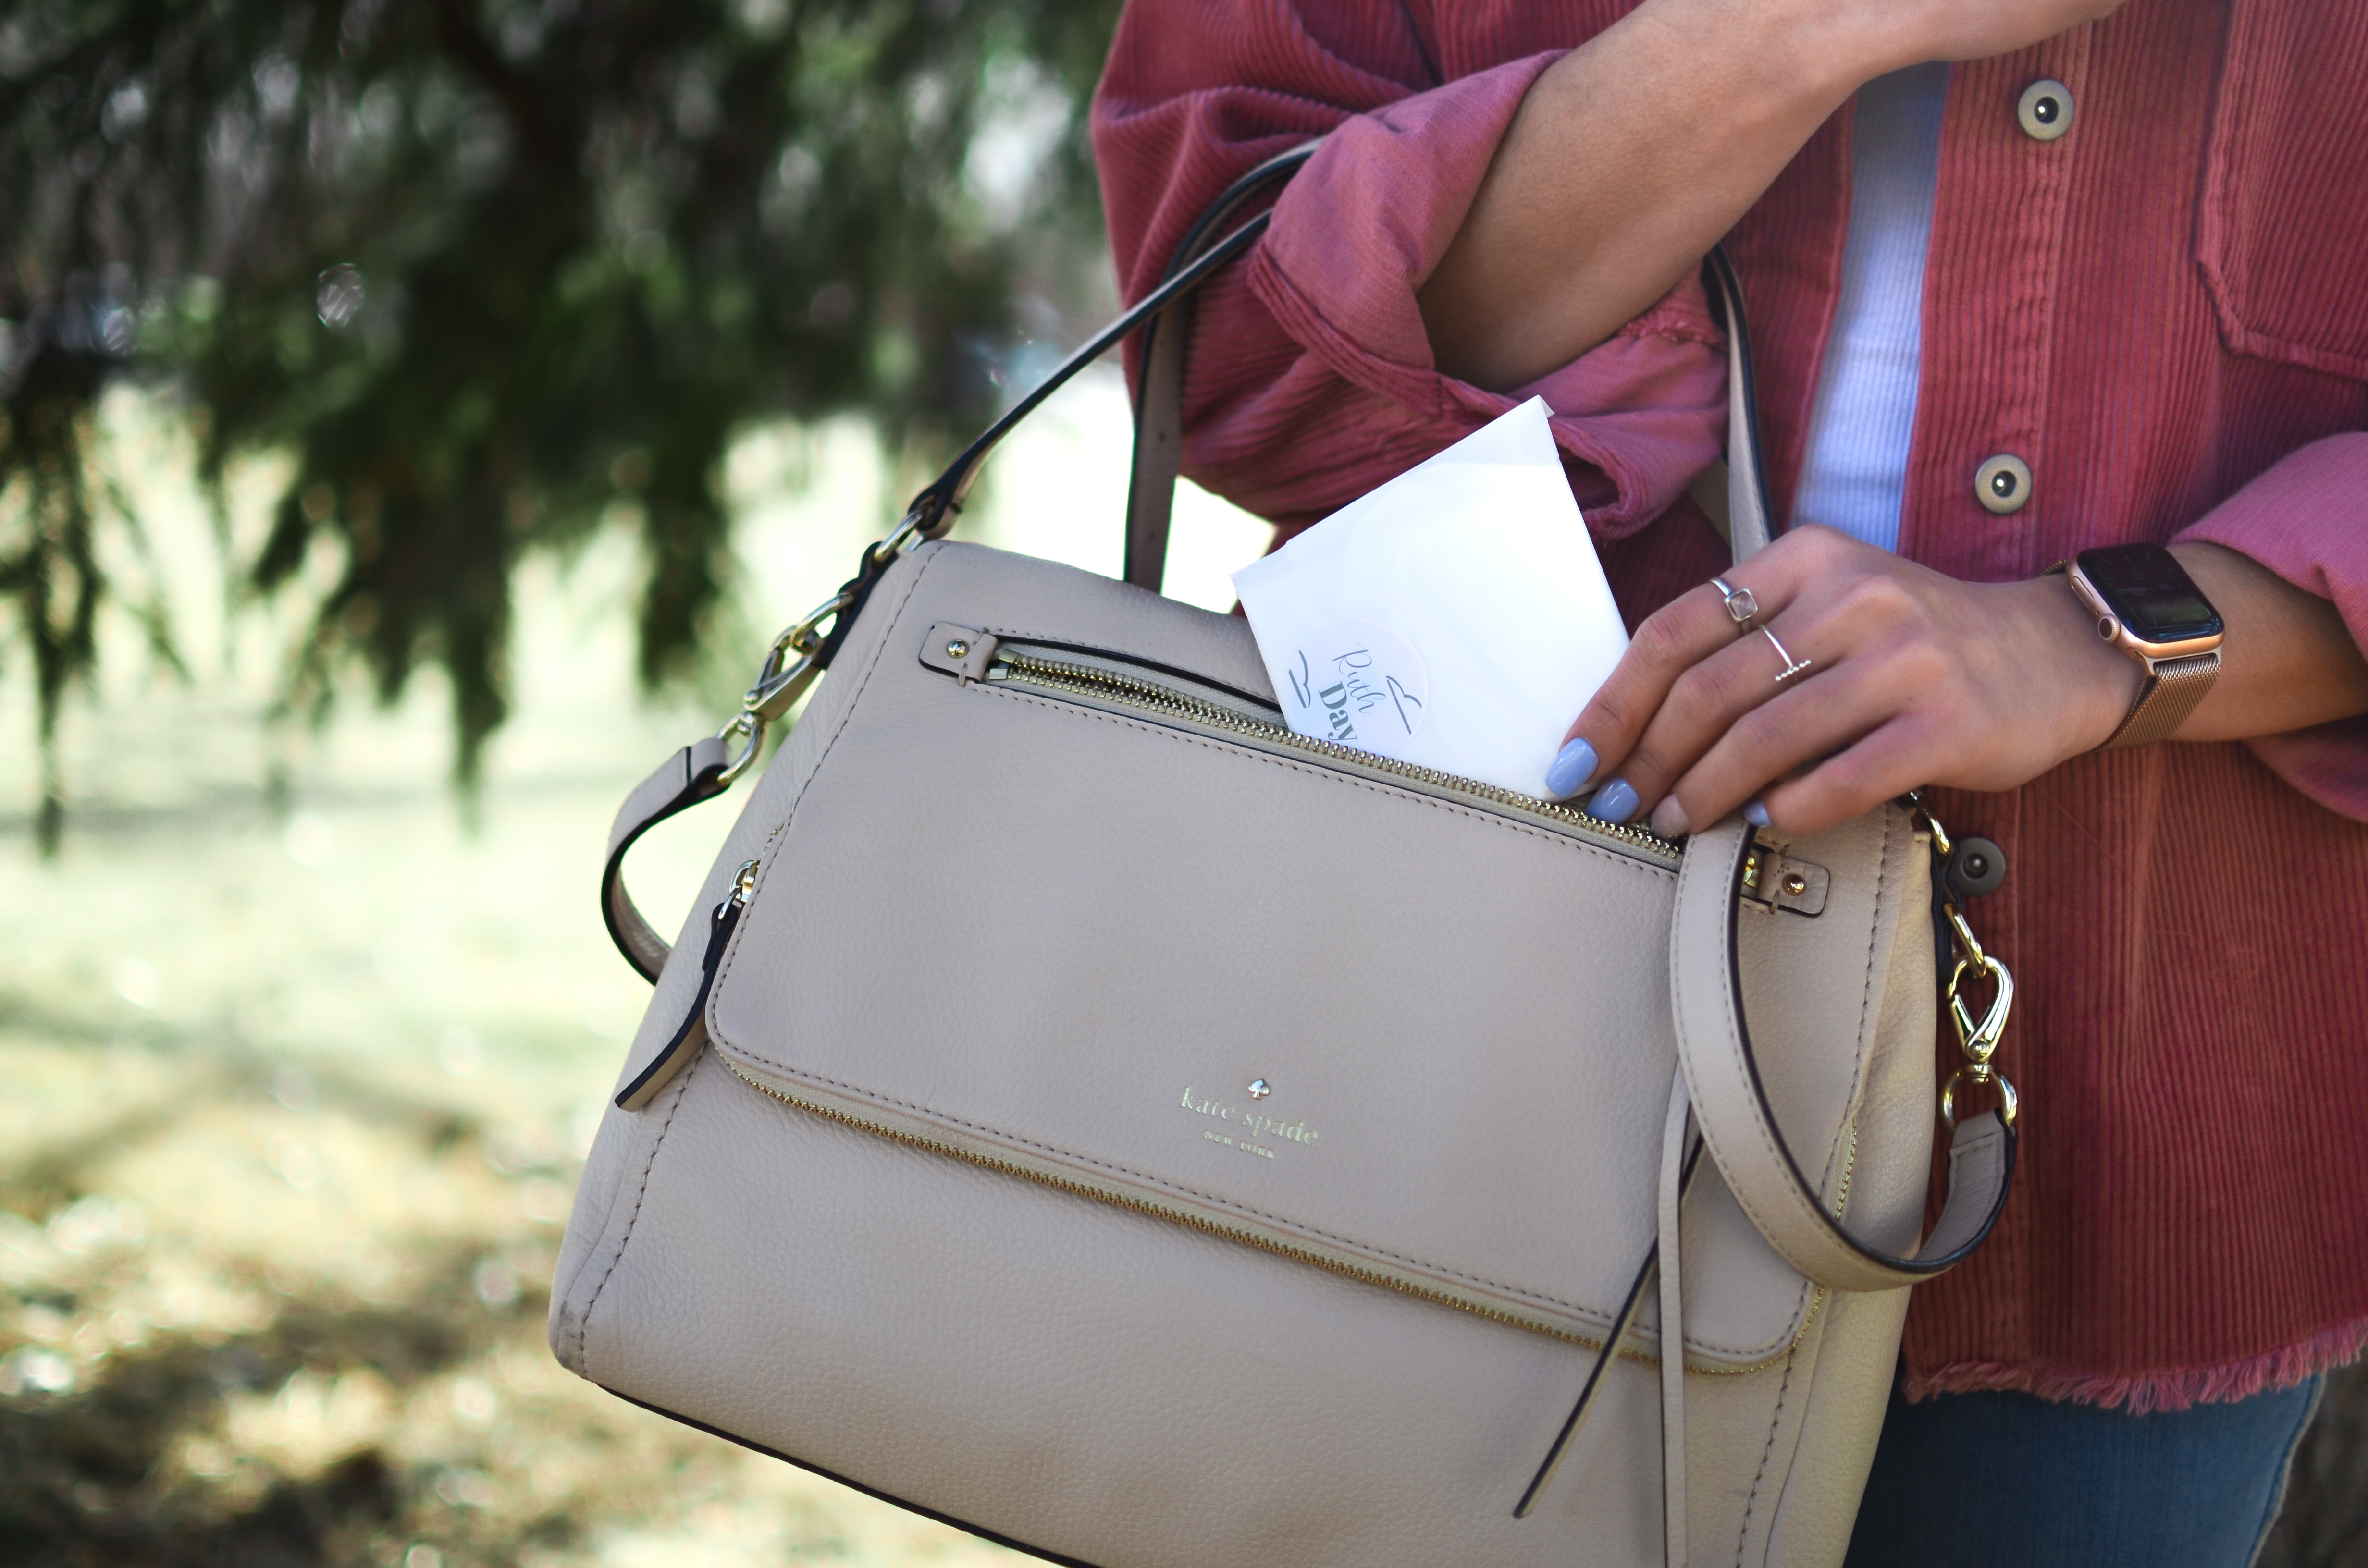 Ruth Day pad being taken out of beige handbag